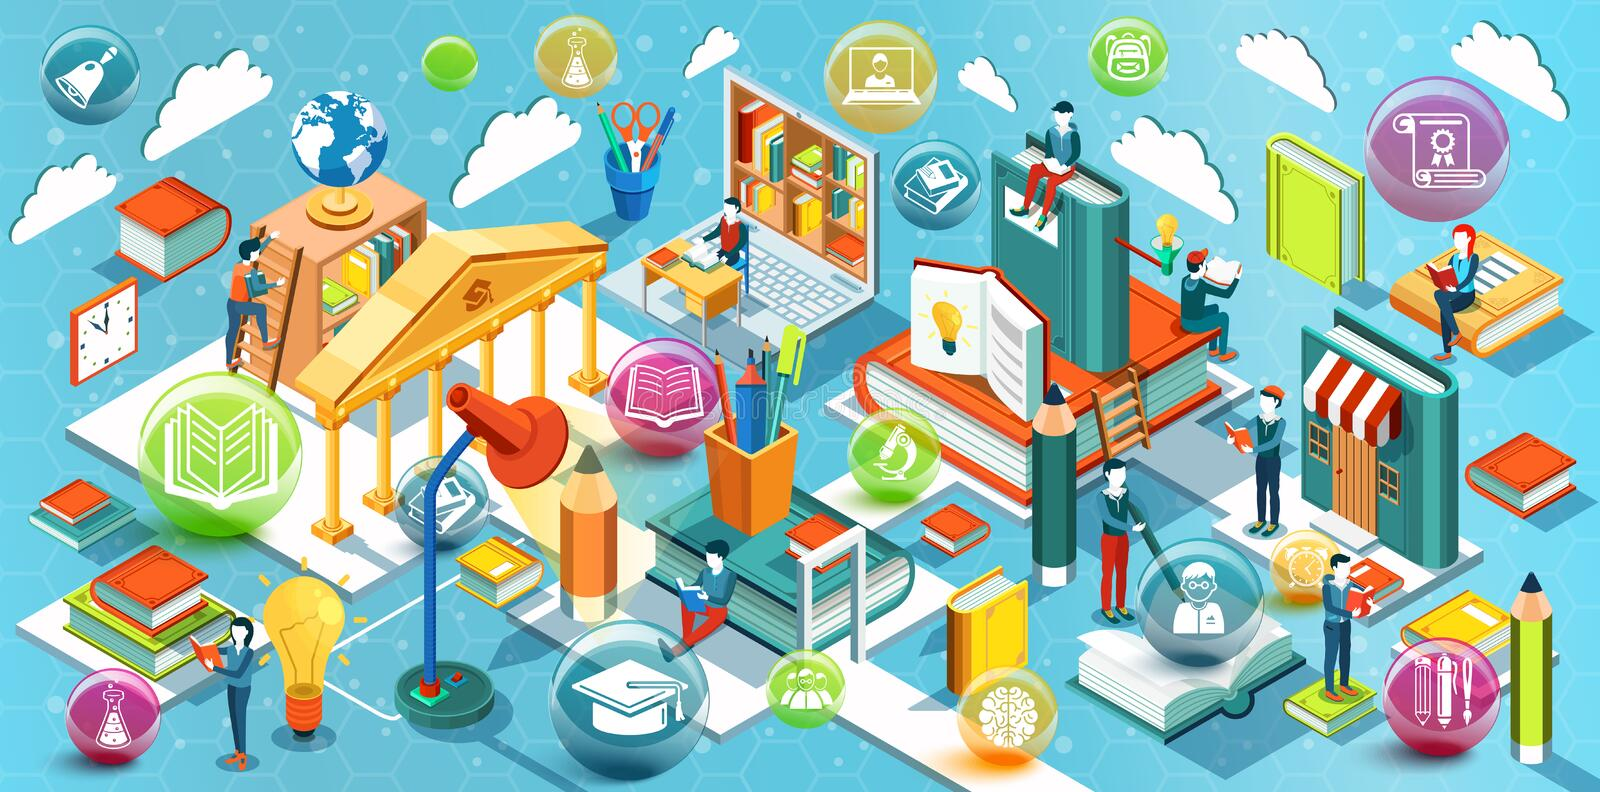 Online education Isometric flat design. The concept of reading books in the library and in the classroom. Learning process. Univer. Sity studies. Vector vector illustration